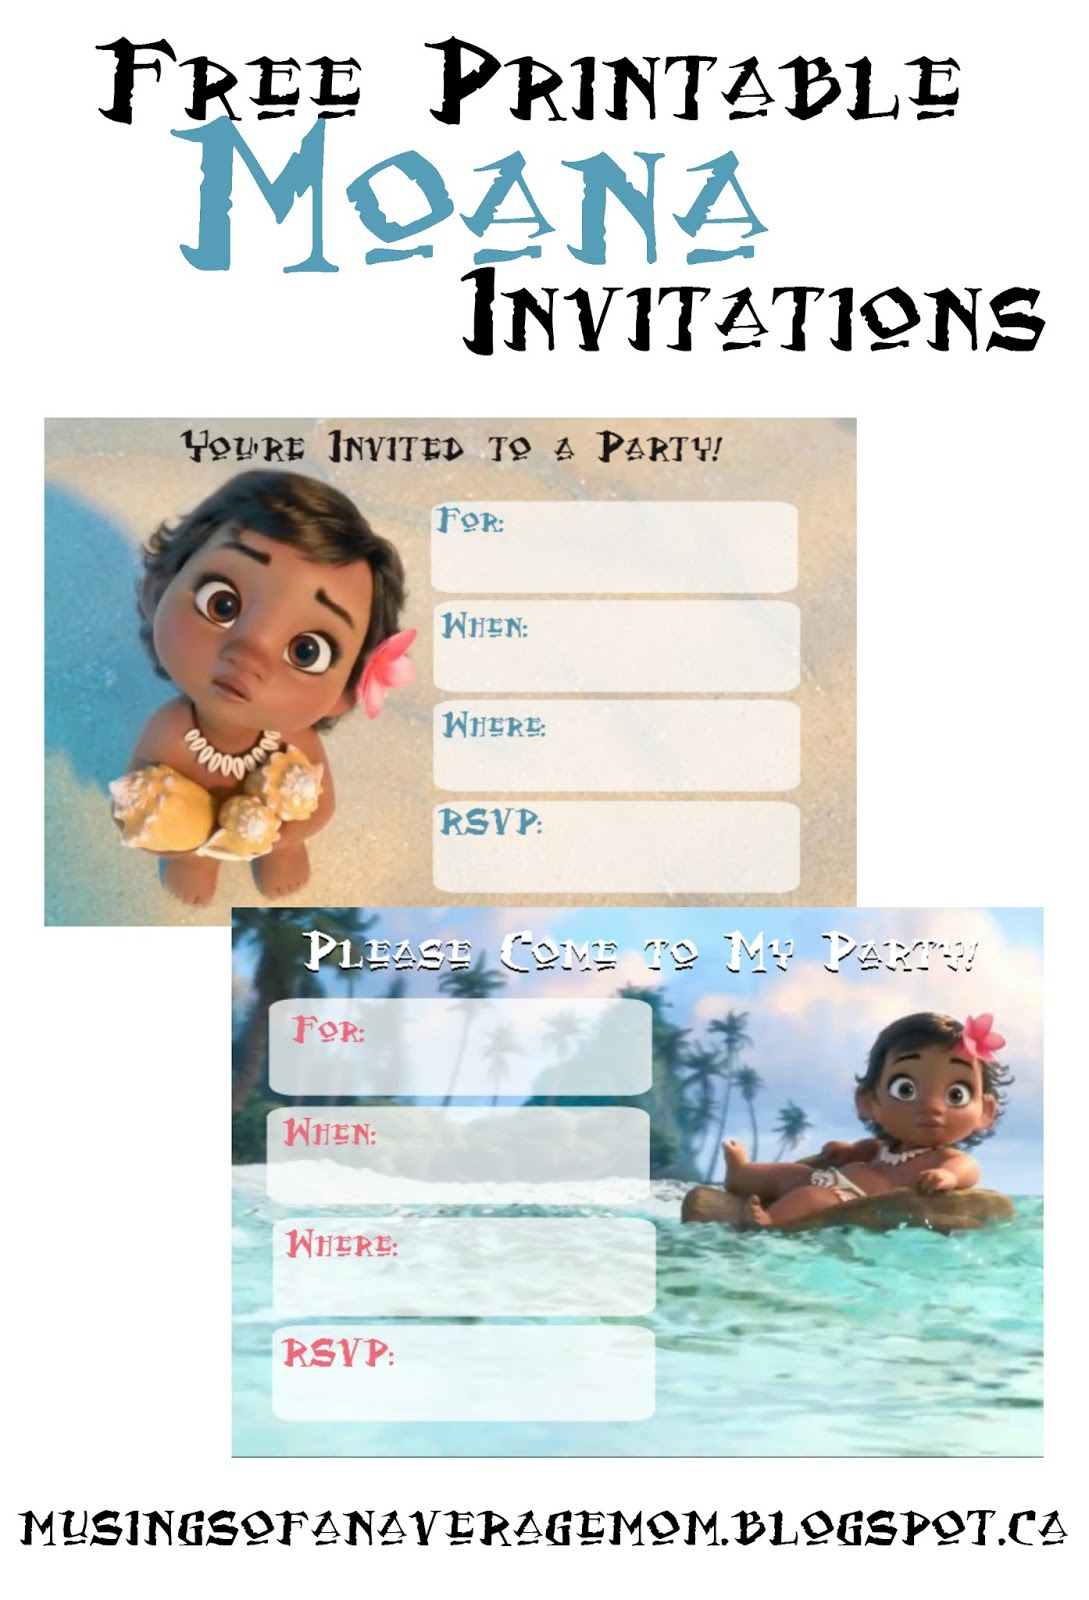 Musings Of An Average Mom: Free Printable Moana Invitations - Free Moana Printable Invitations